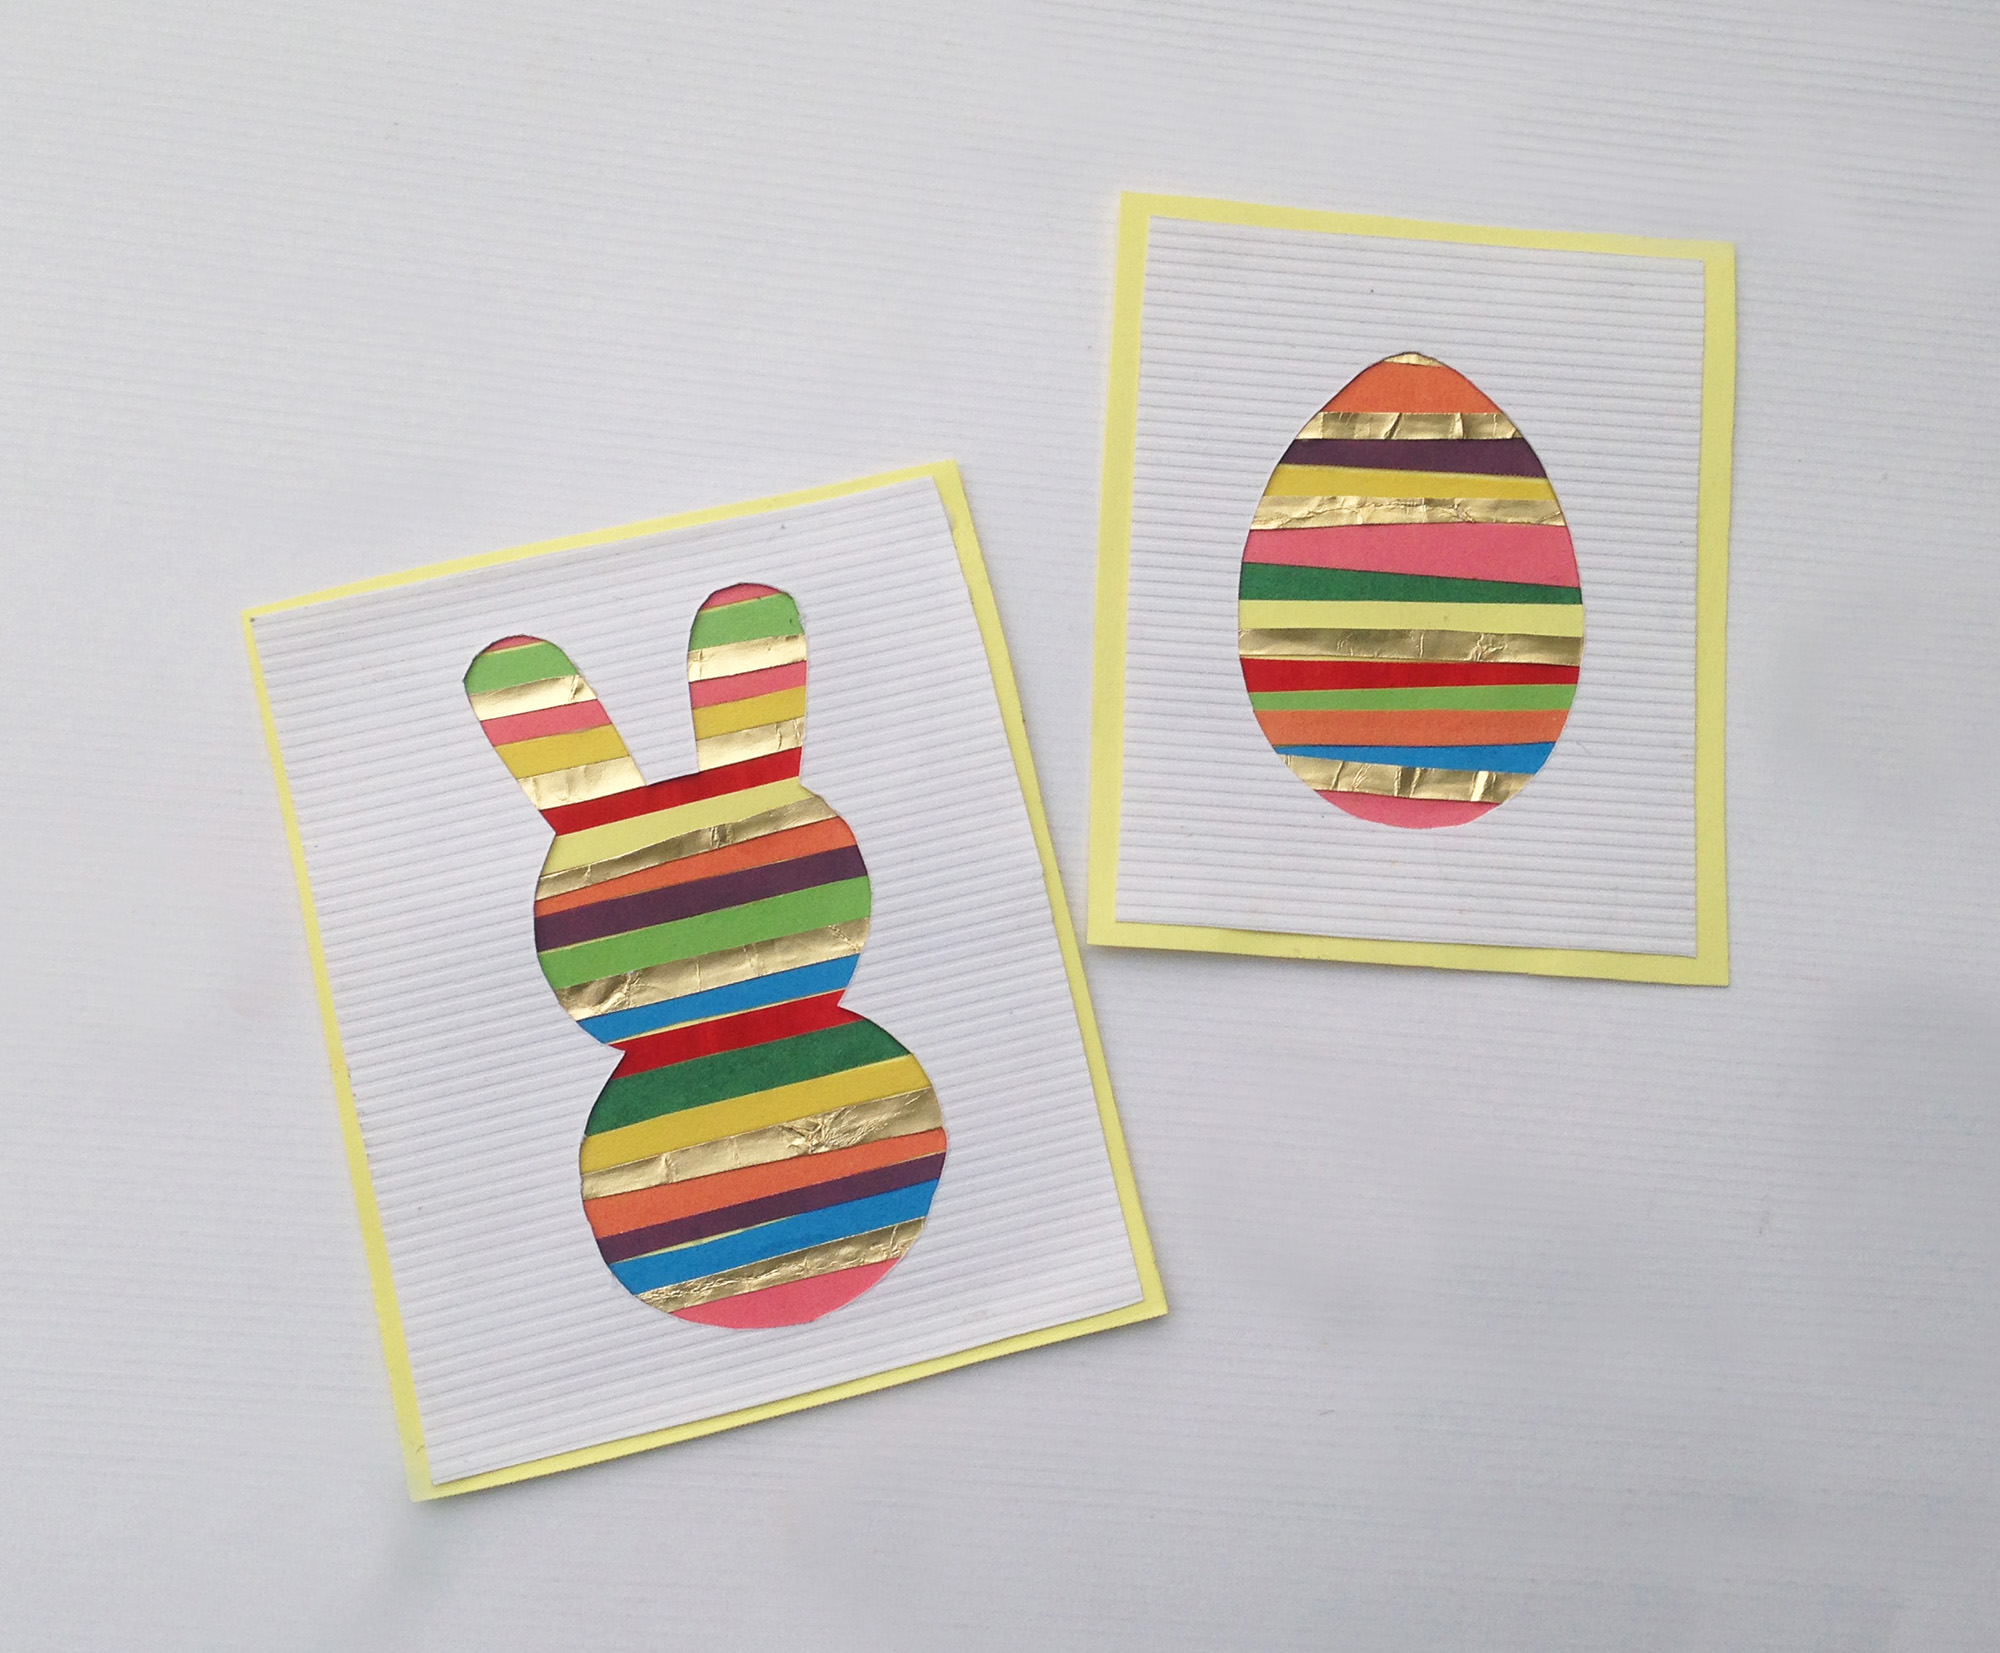 If you are looking for an easy Easter art project to do with your kiddos, try this one! You only need a few supplies and you can really let your creativity shine through with this craft.